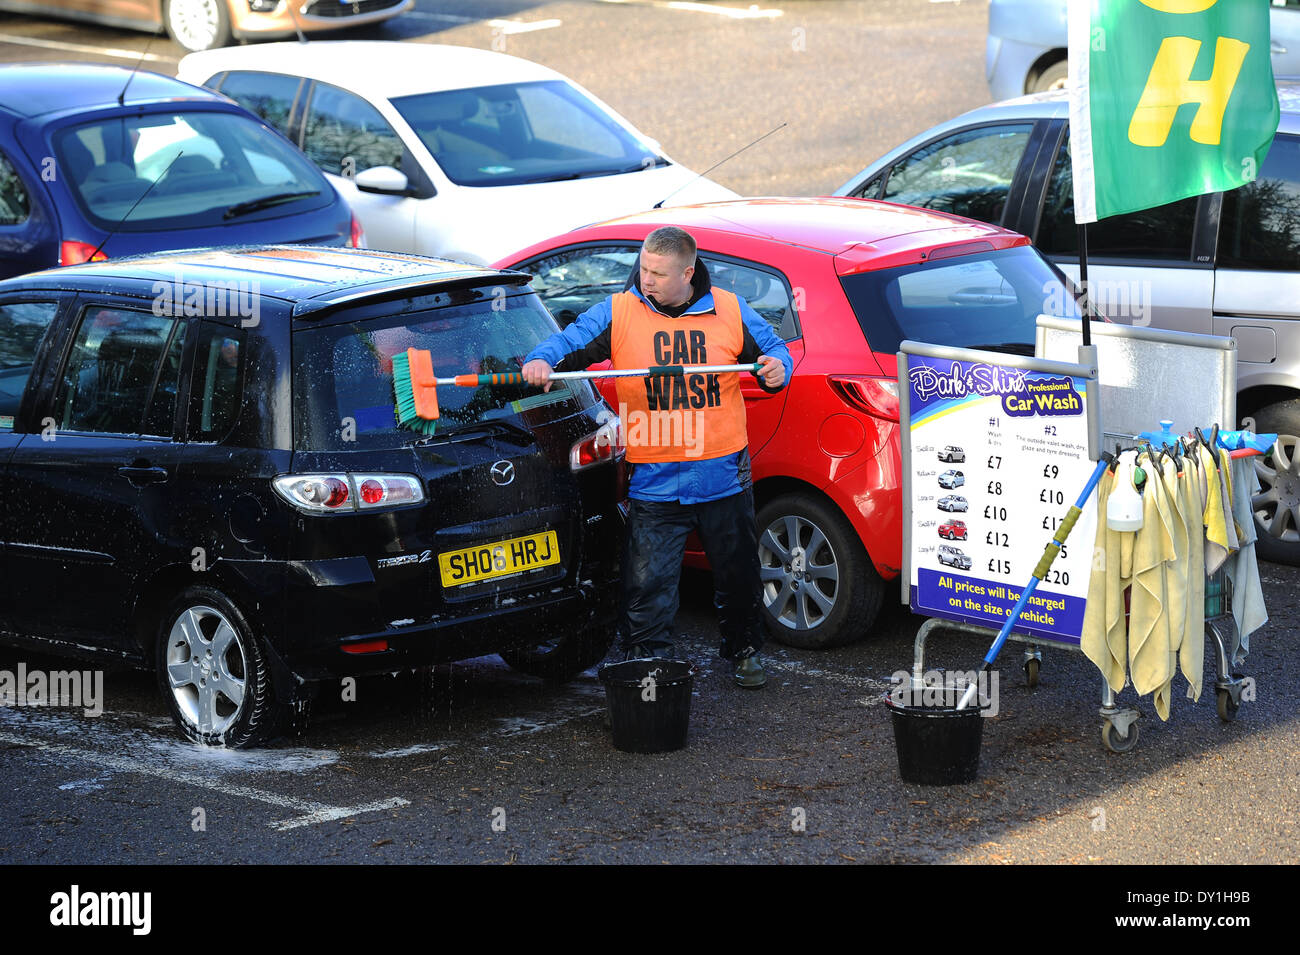 Cleaner Cars Stock Photos Amp Cleaner Cars Stock Images Alamy